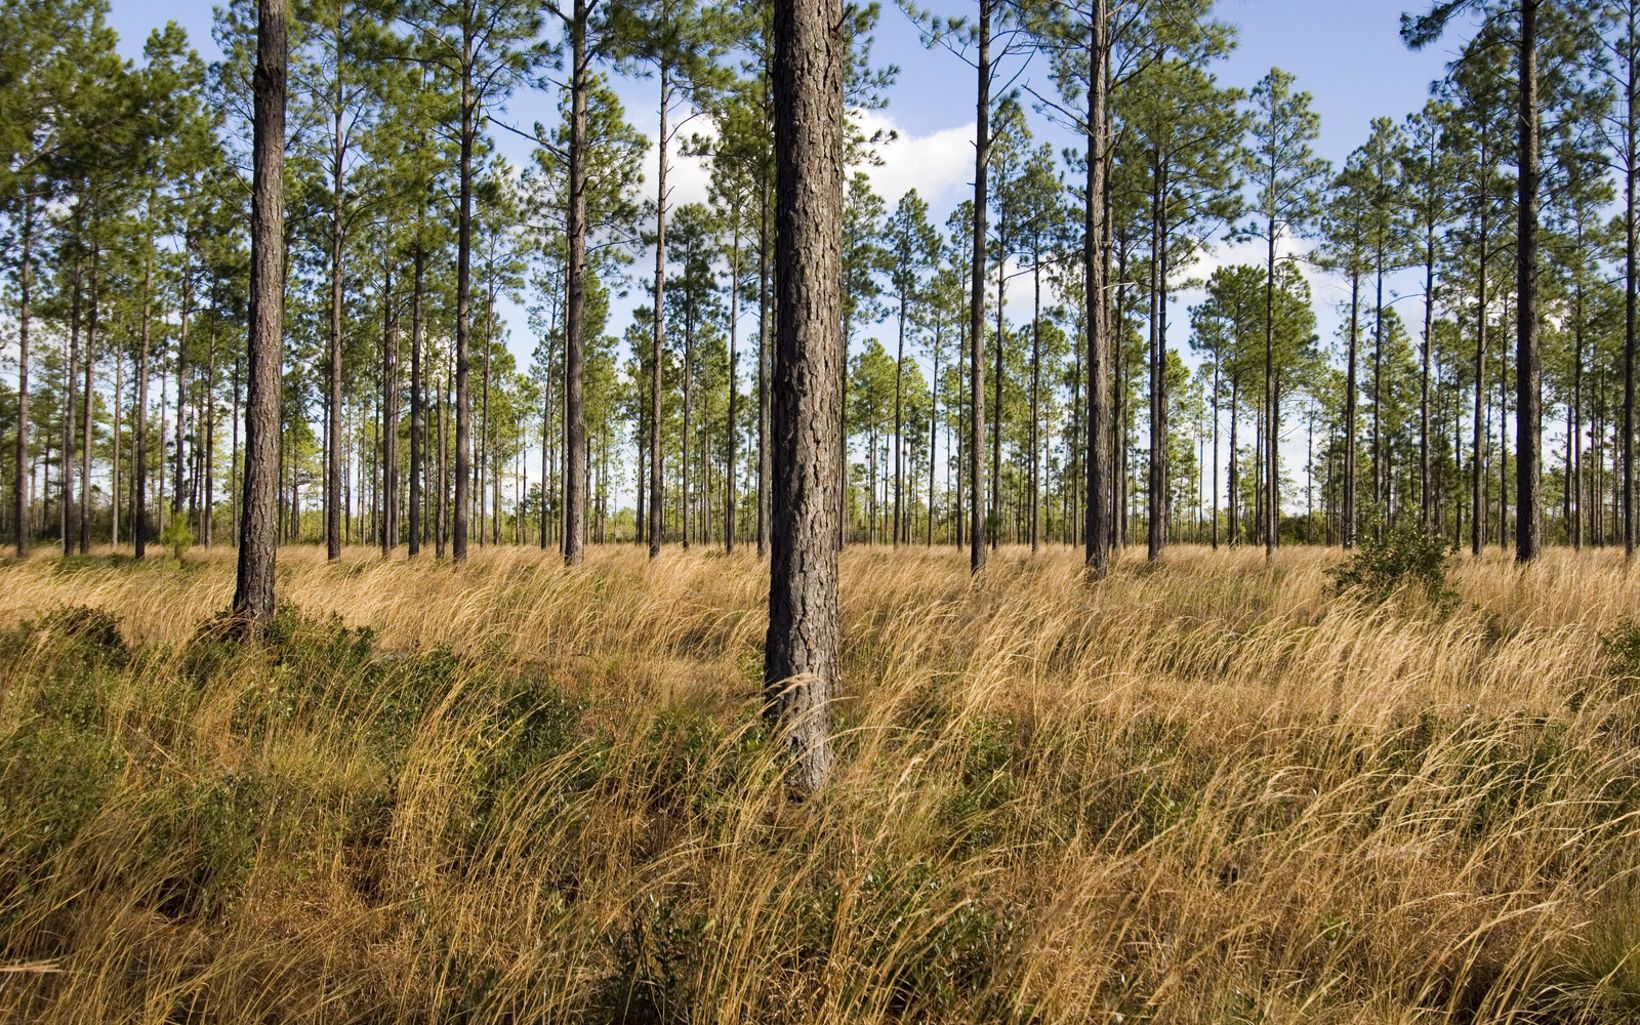 Mixed pine savannah comprised of Longleaf, planted pines and native grasses at Green Swamp Preserve located in North Carolina's coastal plain, Brunswick County